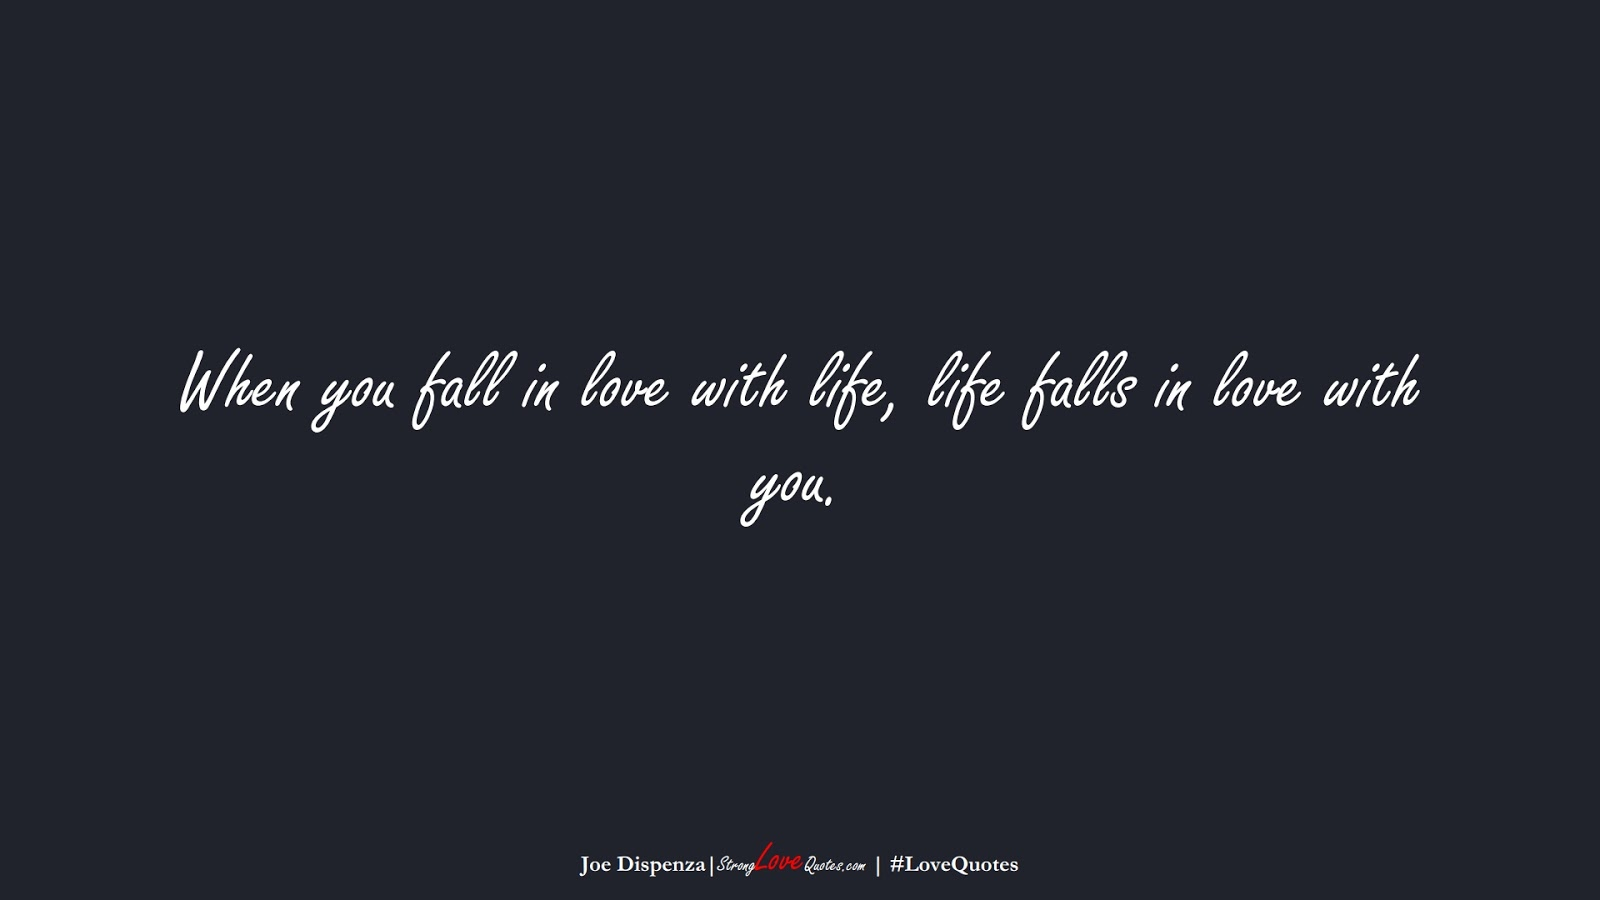 When you fall in love with life, life falls in love with you. (Joe Dispenza);  #LoveQuotes